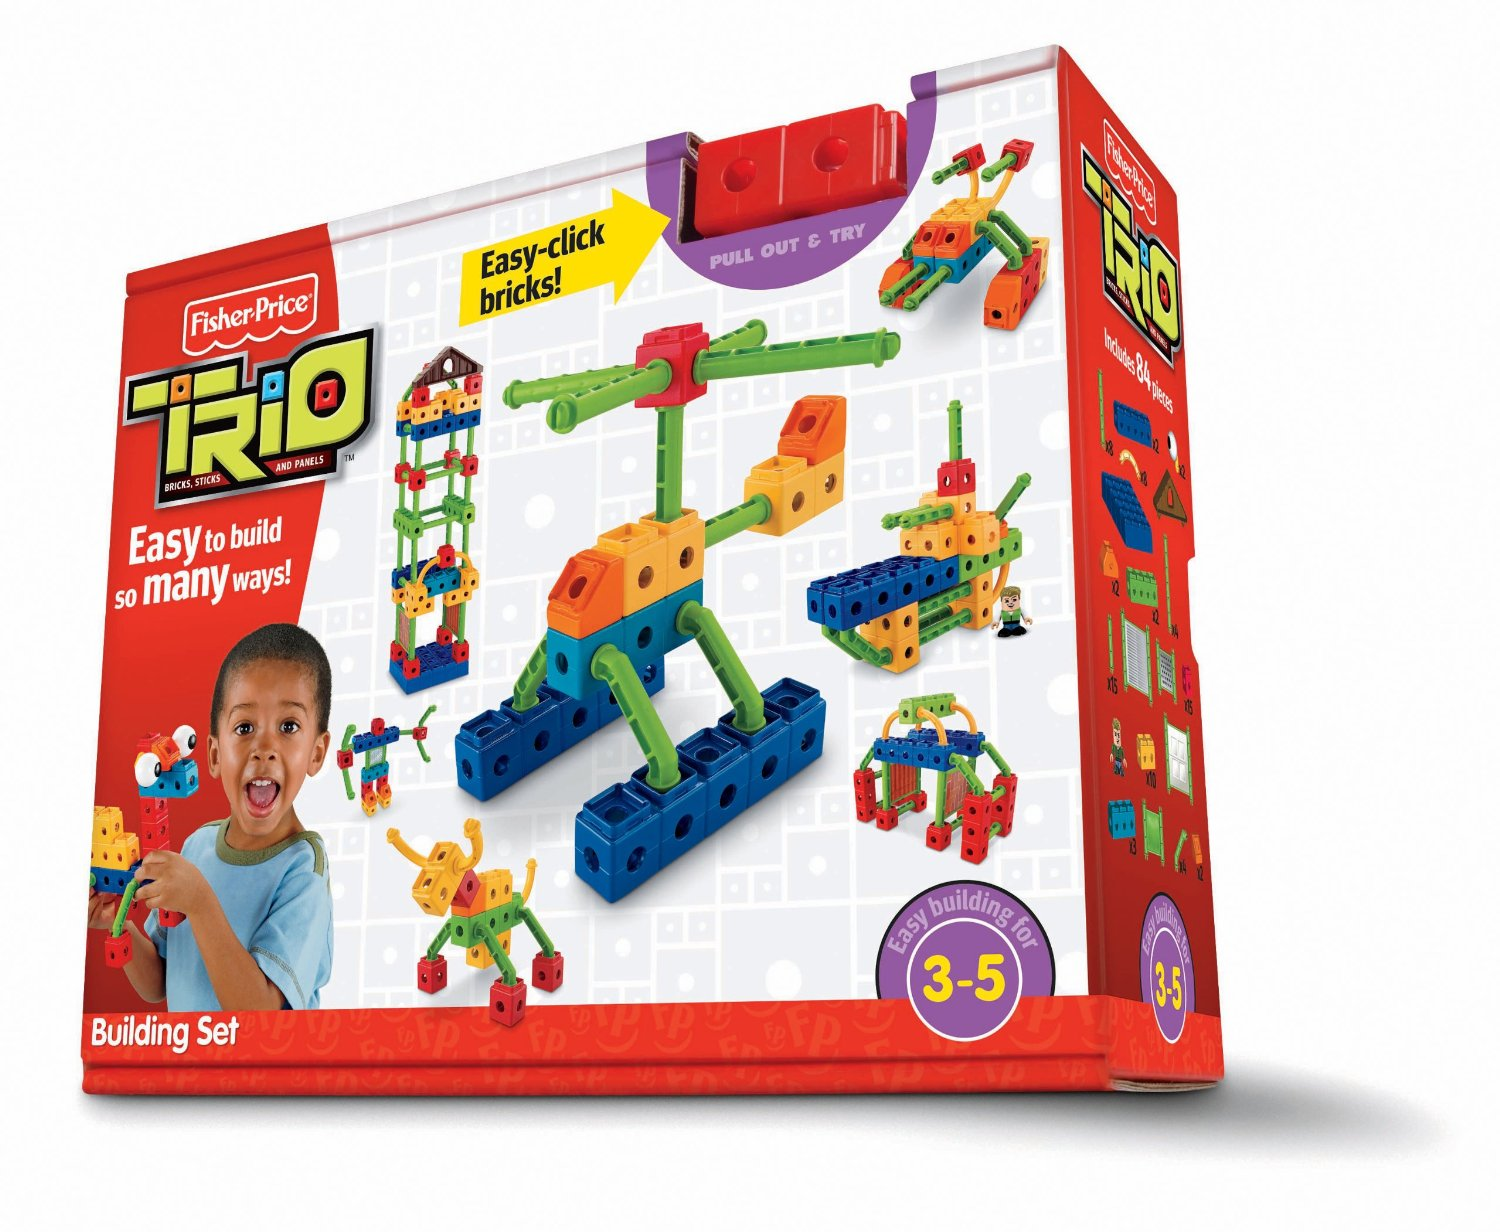 toys archives  how do you do it - from fisherprice